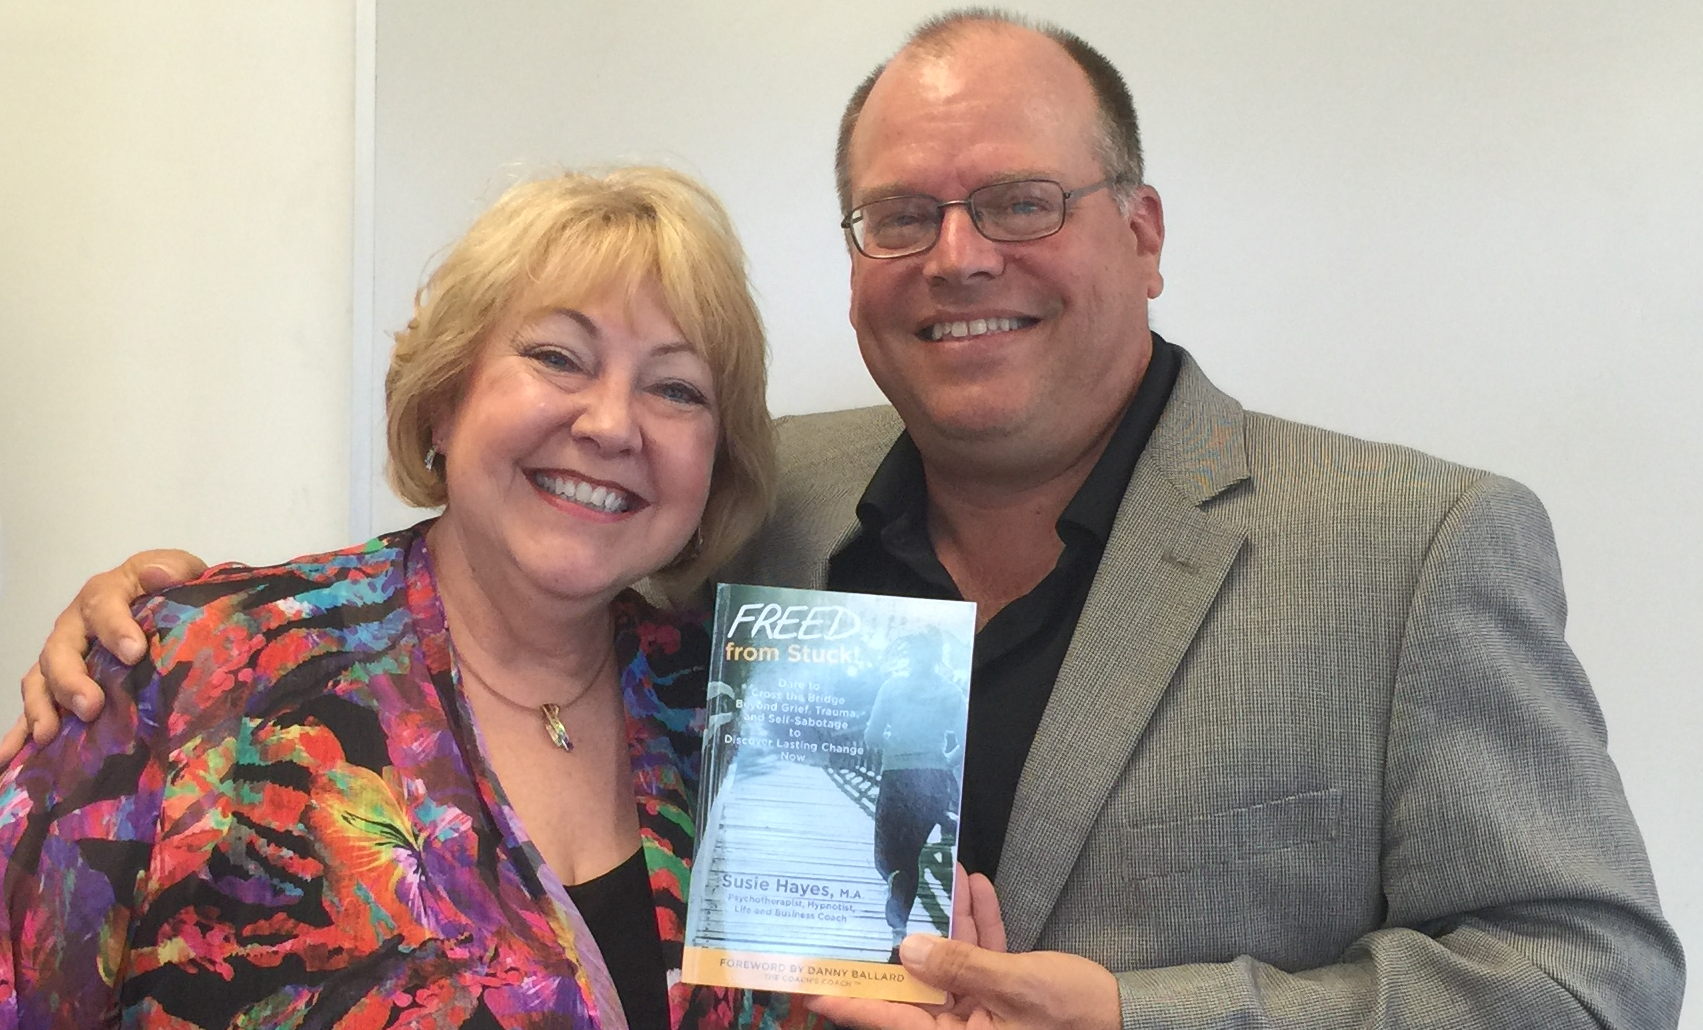 Marty Dickinson with author of FREED from Stuck, Susie Hayes